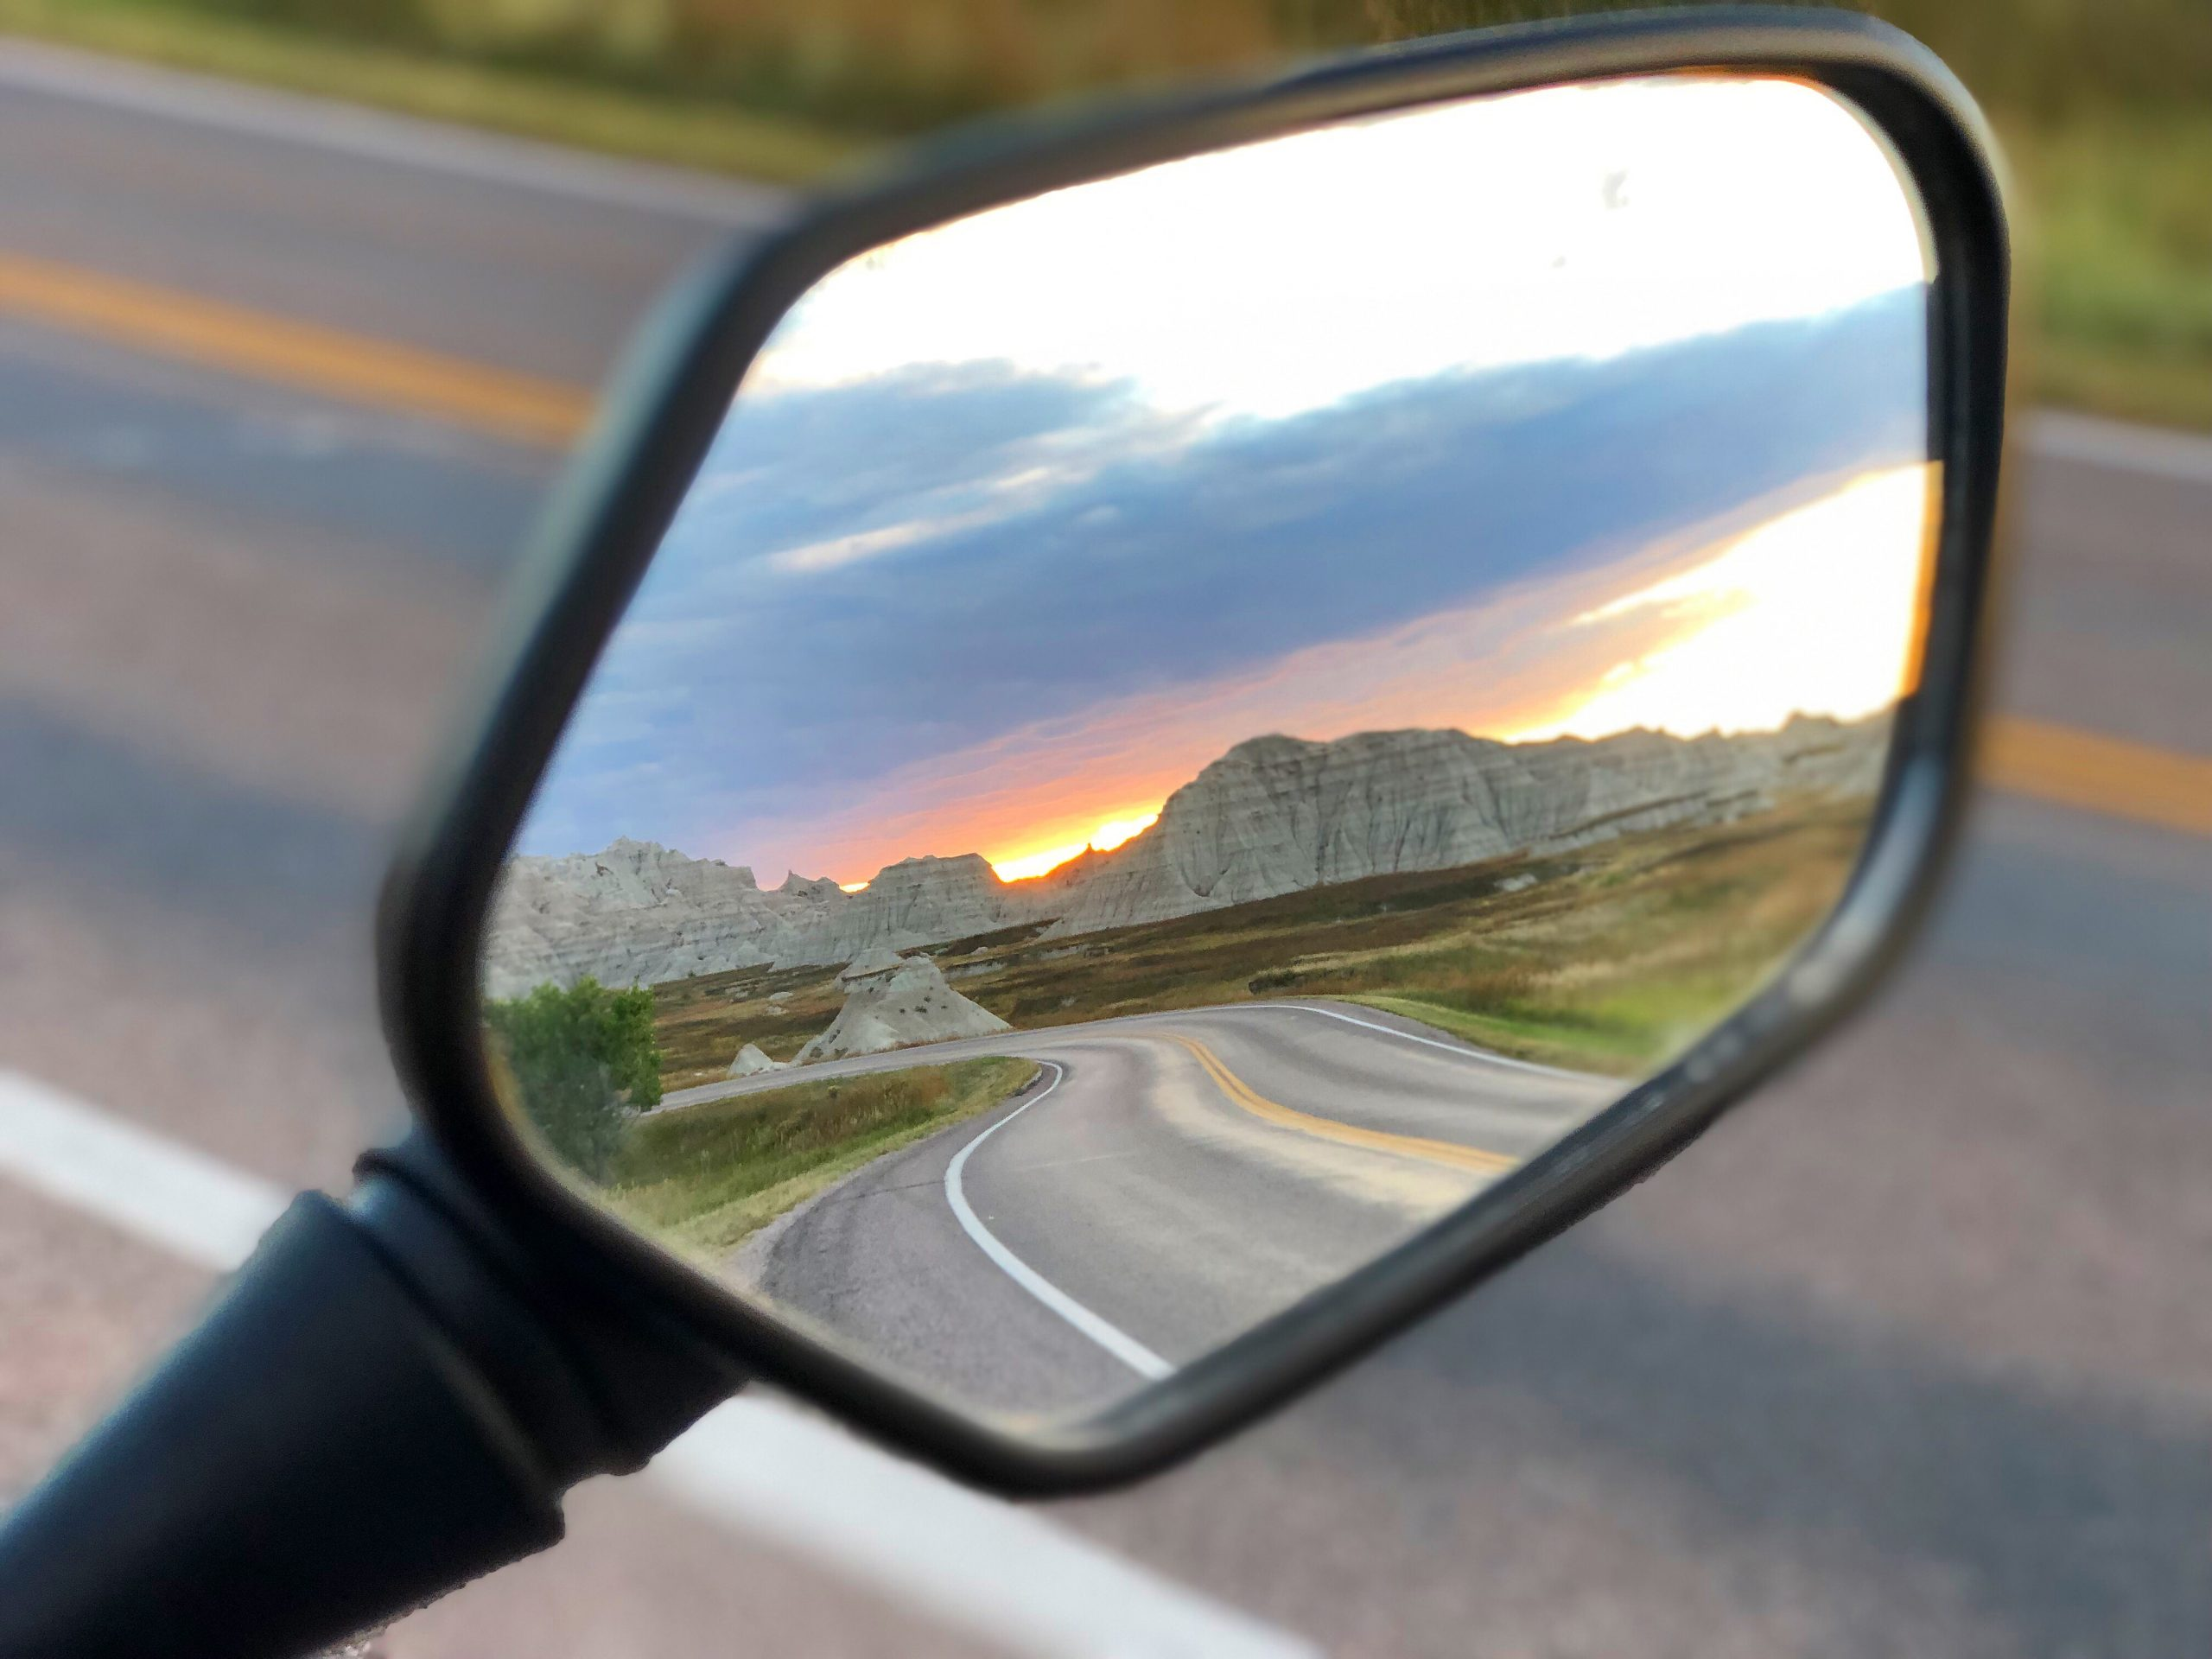 Sunset in the Badlands NP through the sideview mirror